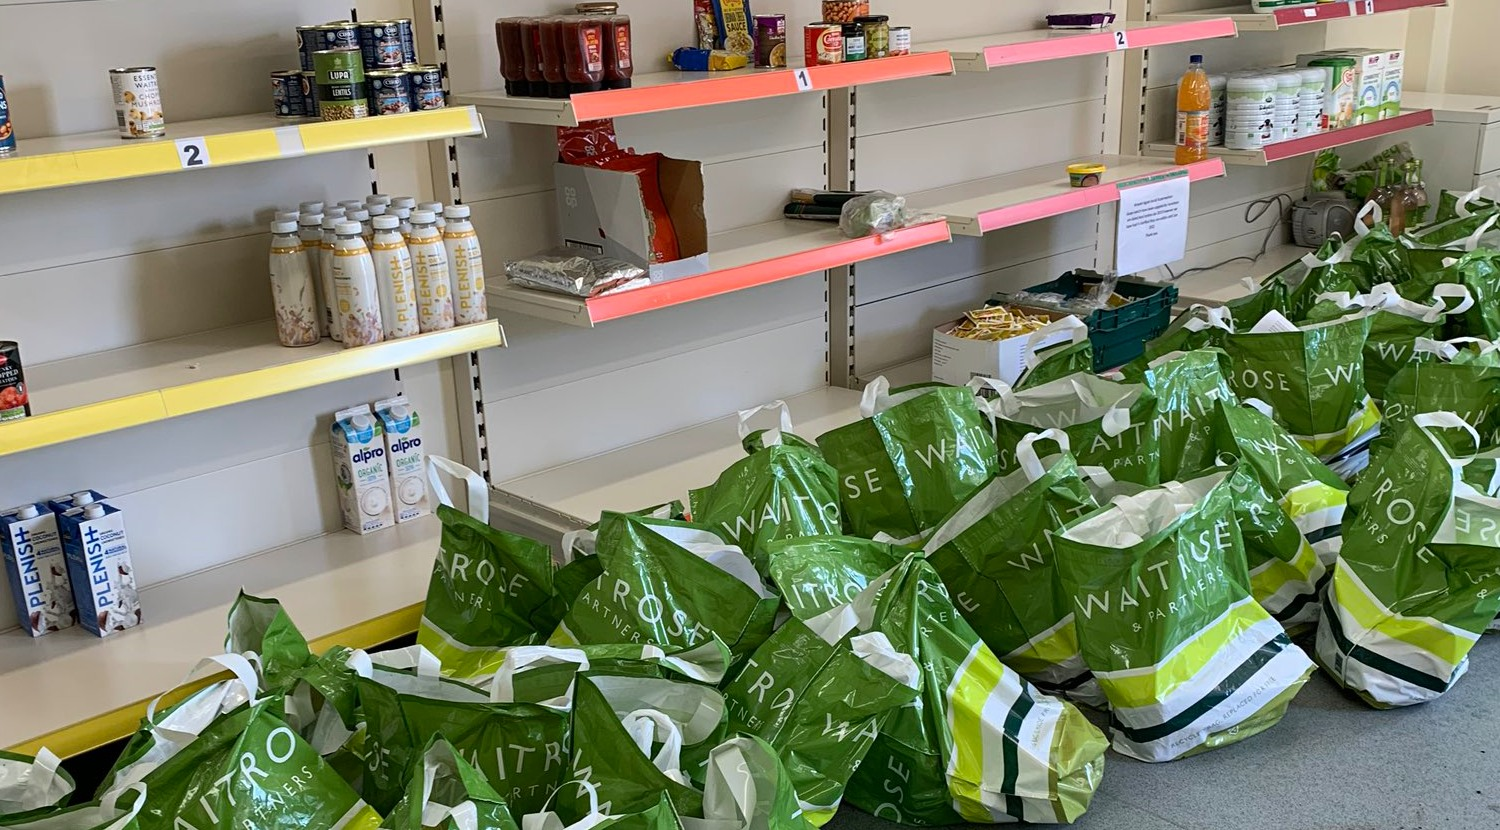 bags for food infront of shelves